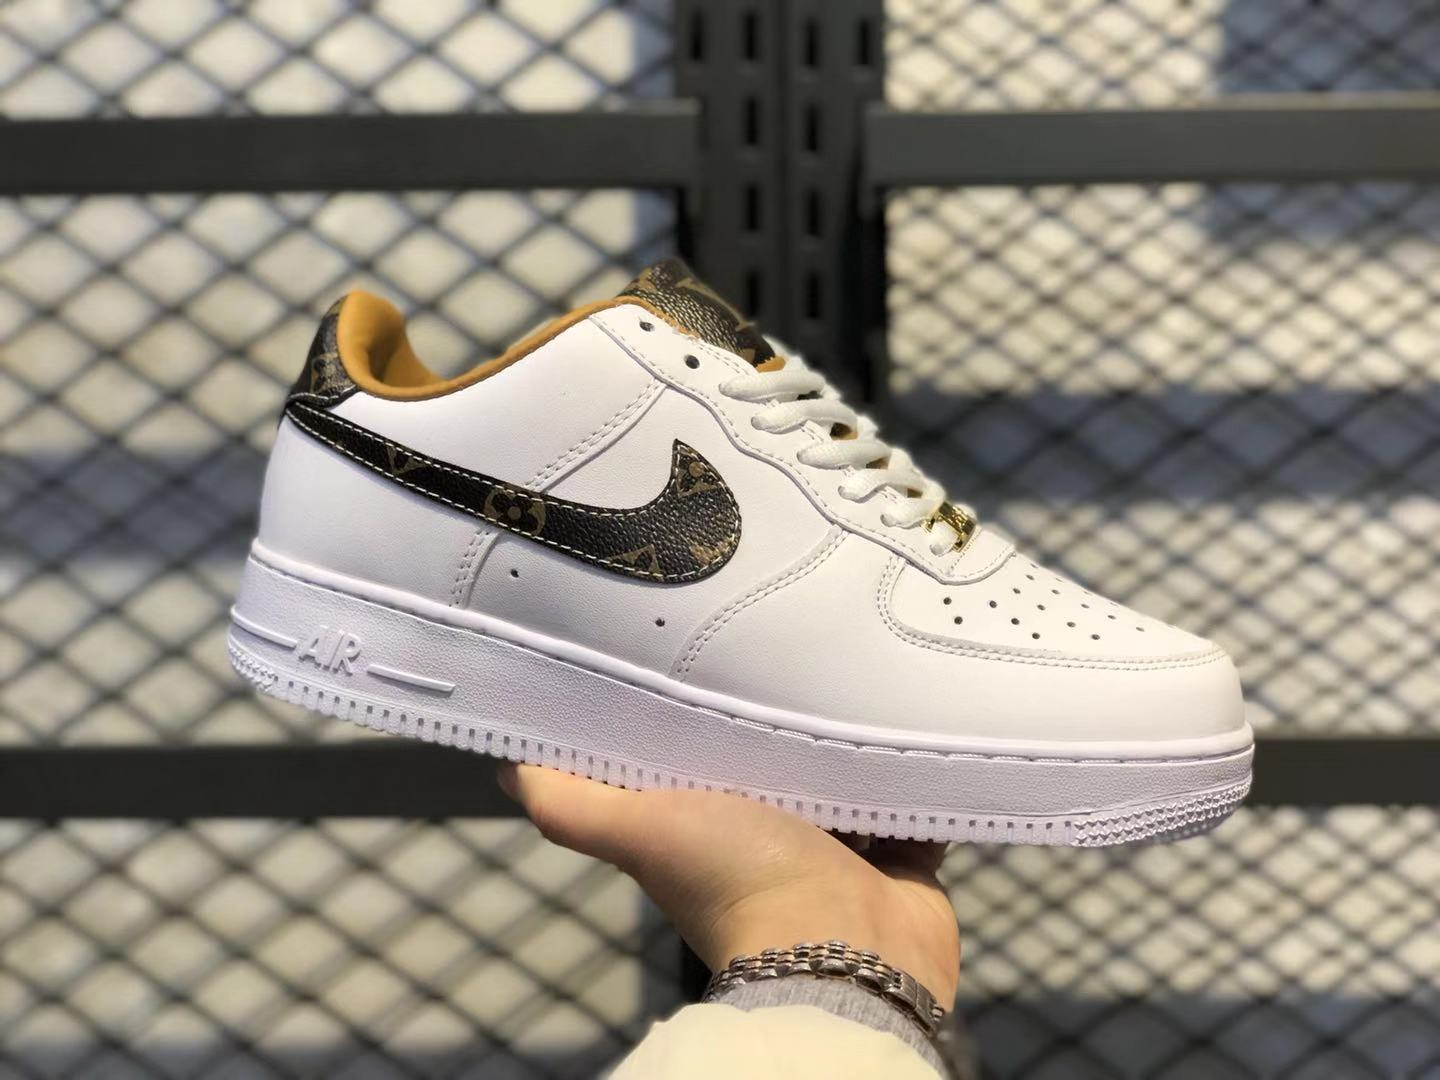 Nike Air Force 1 Low White/Dark Brown-Earth Yellow 315115-112 Skate Boarding Shoes